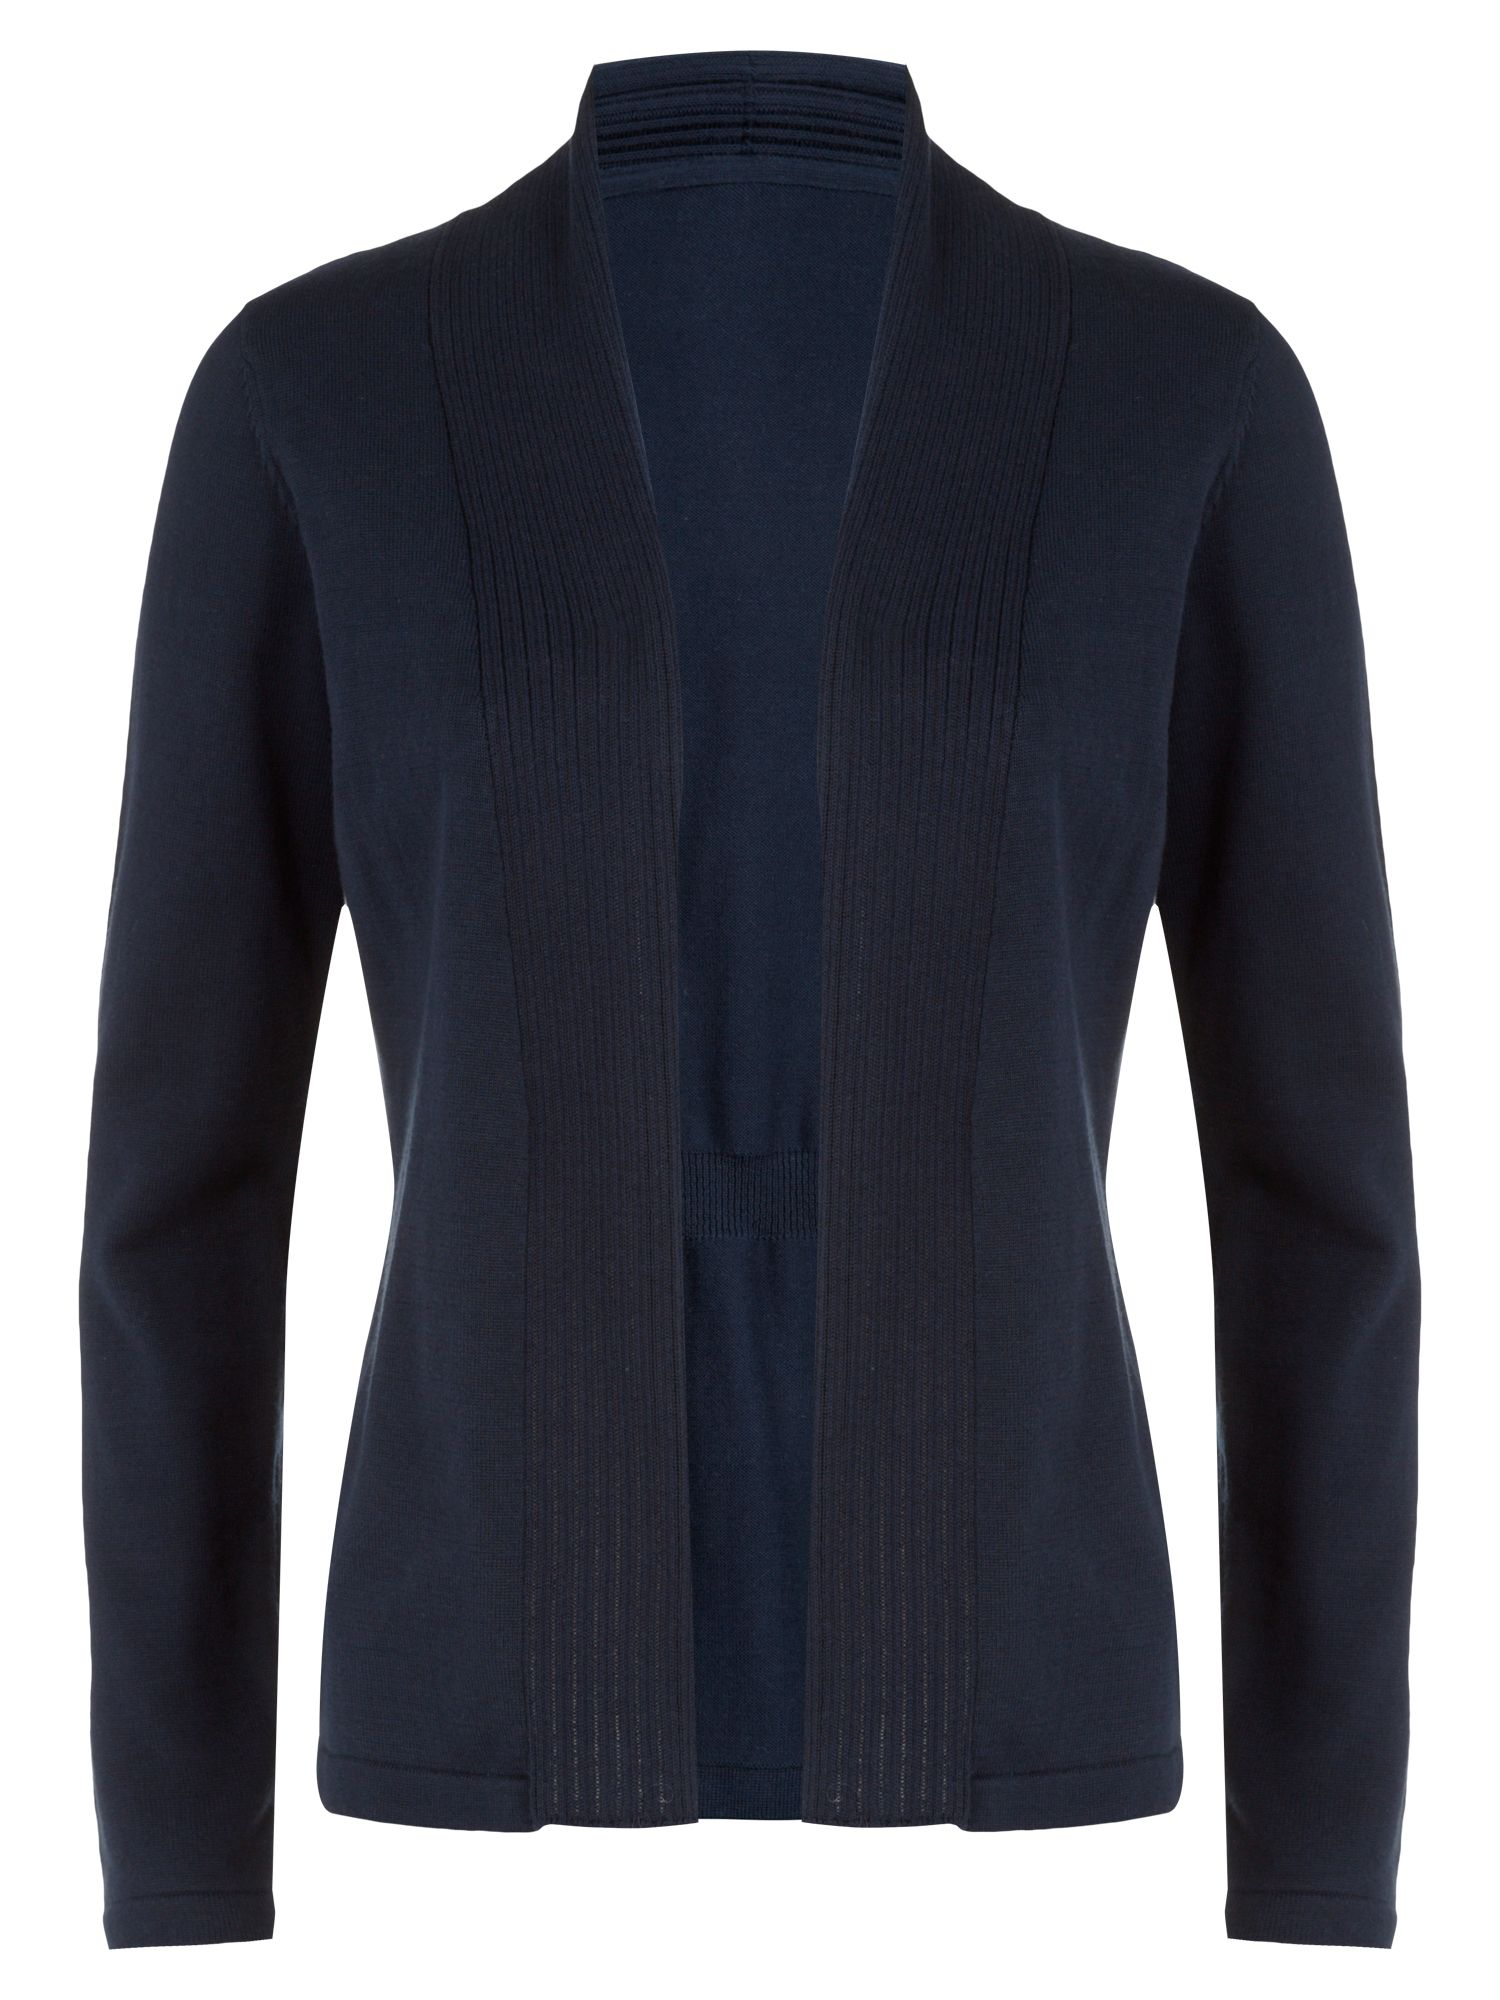 Winter navy cotton cardigan